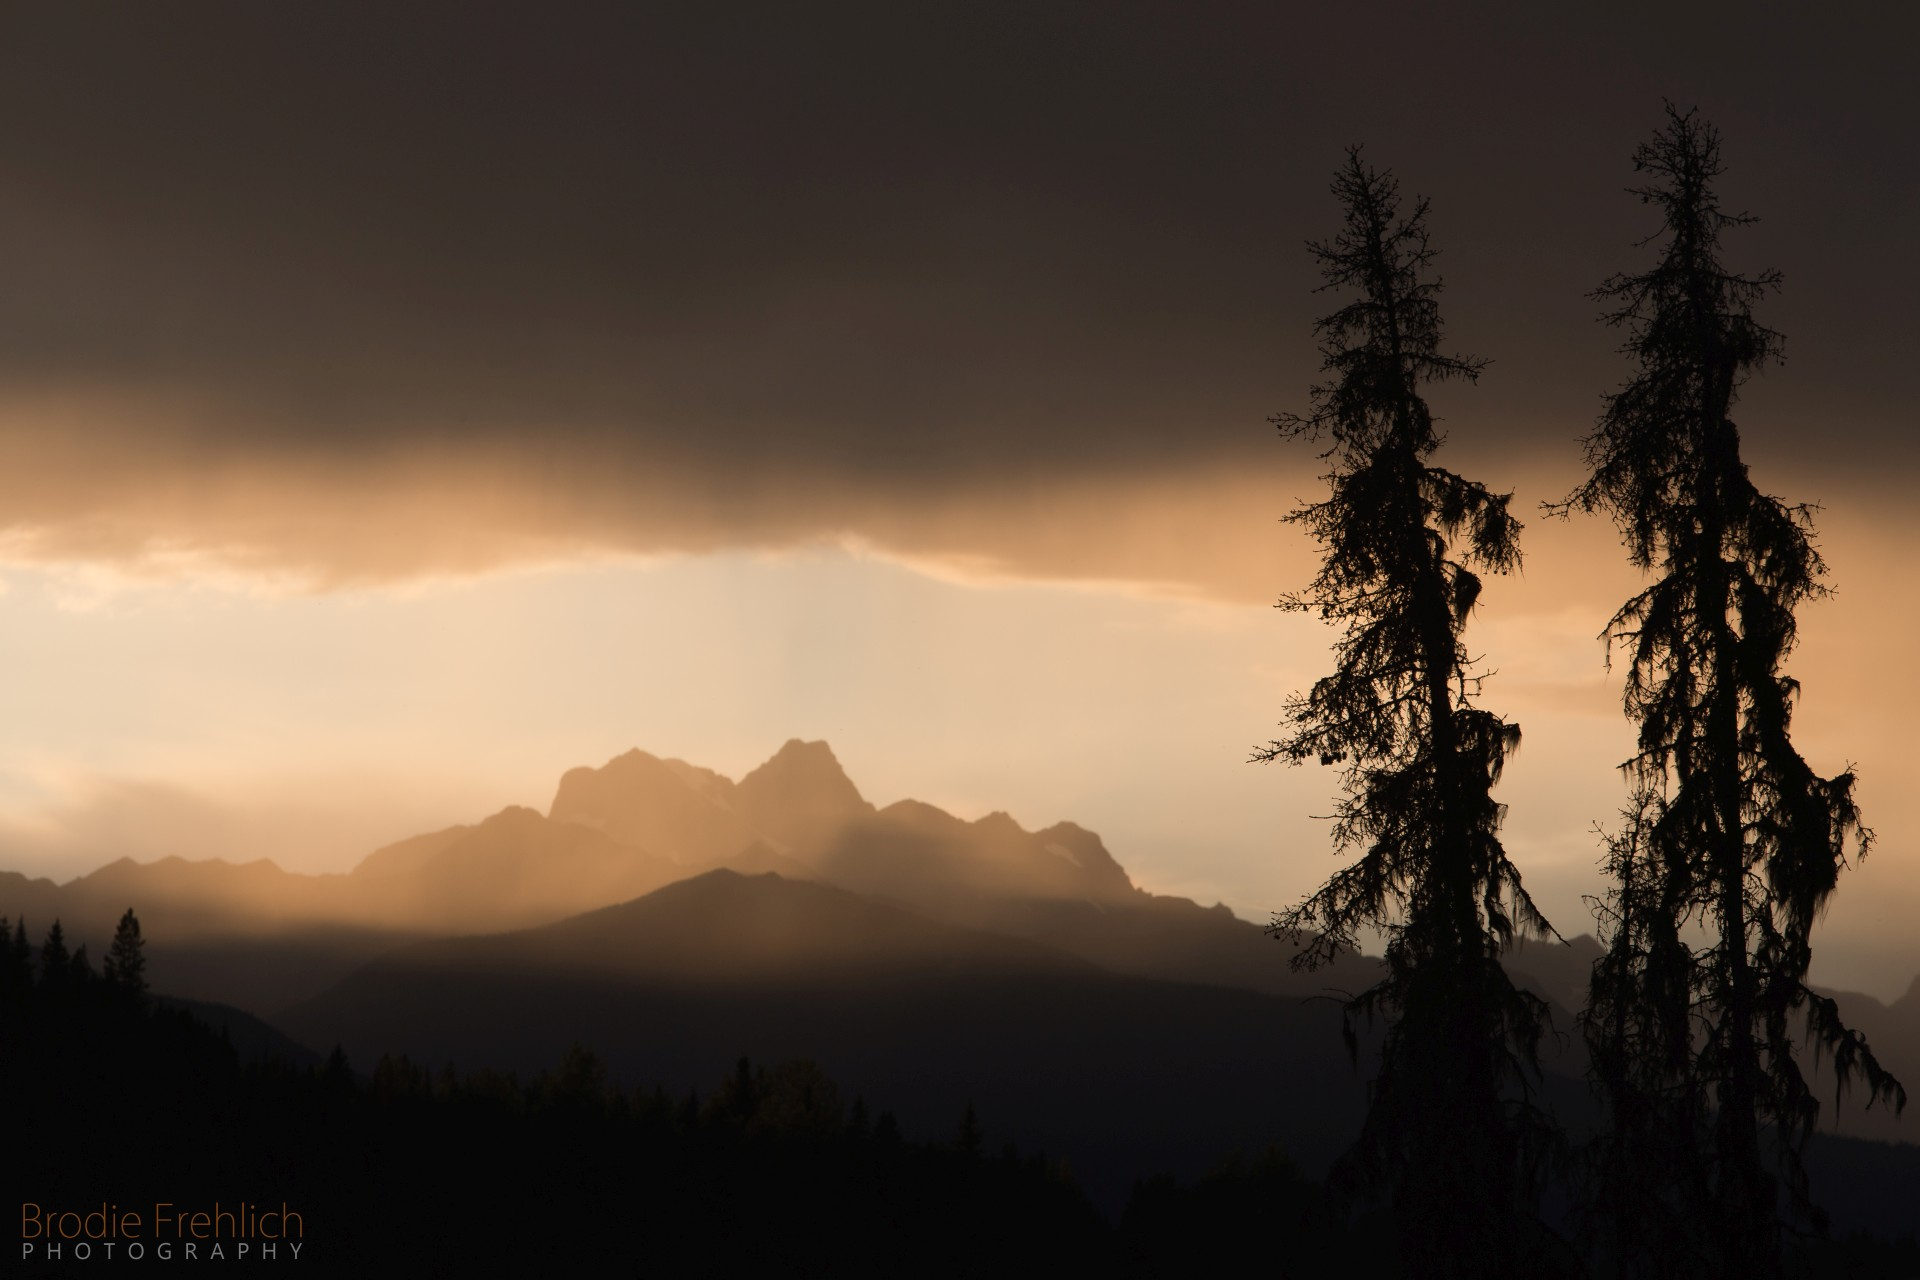 2014 Landscapes - Smithers, BC